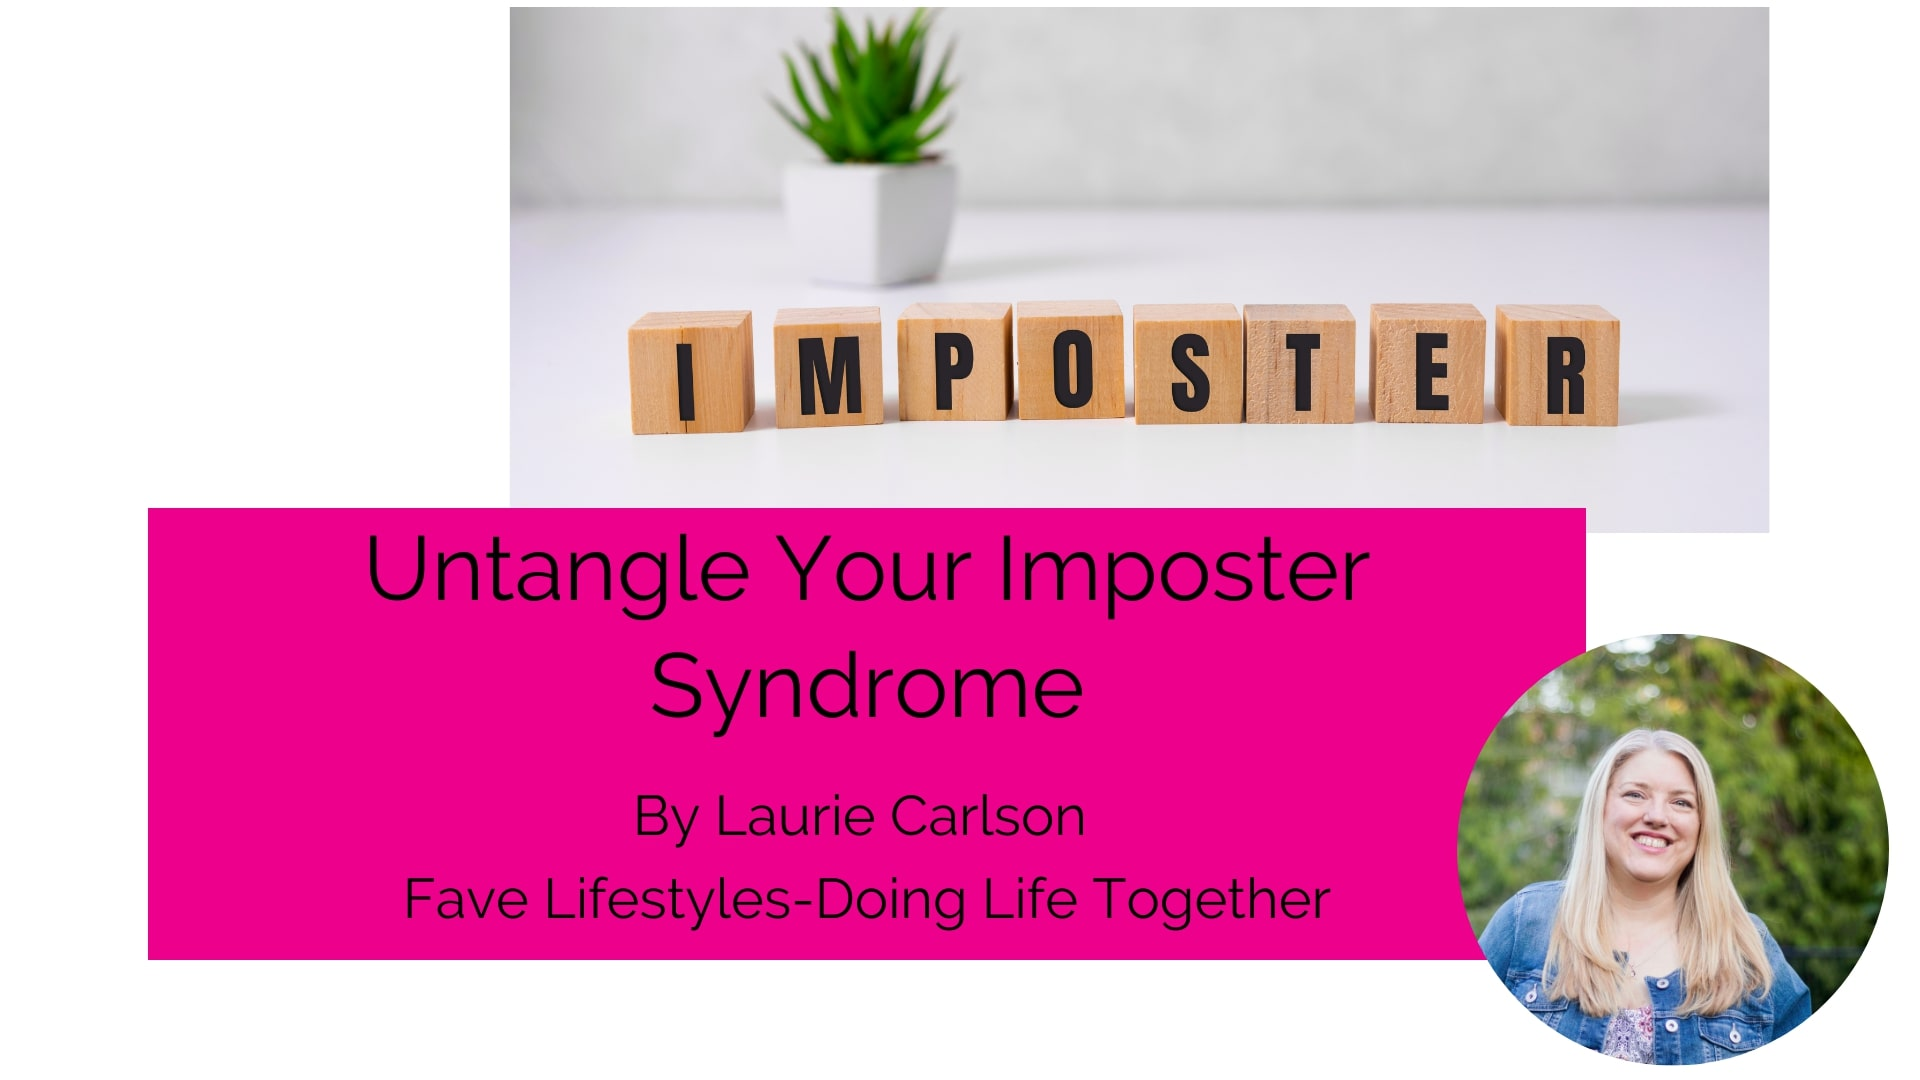 Untangle Your Imposter Syndrome